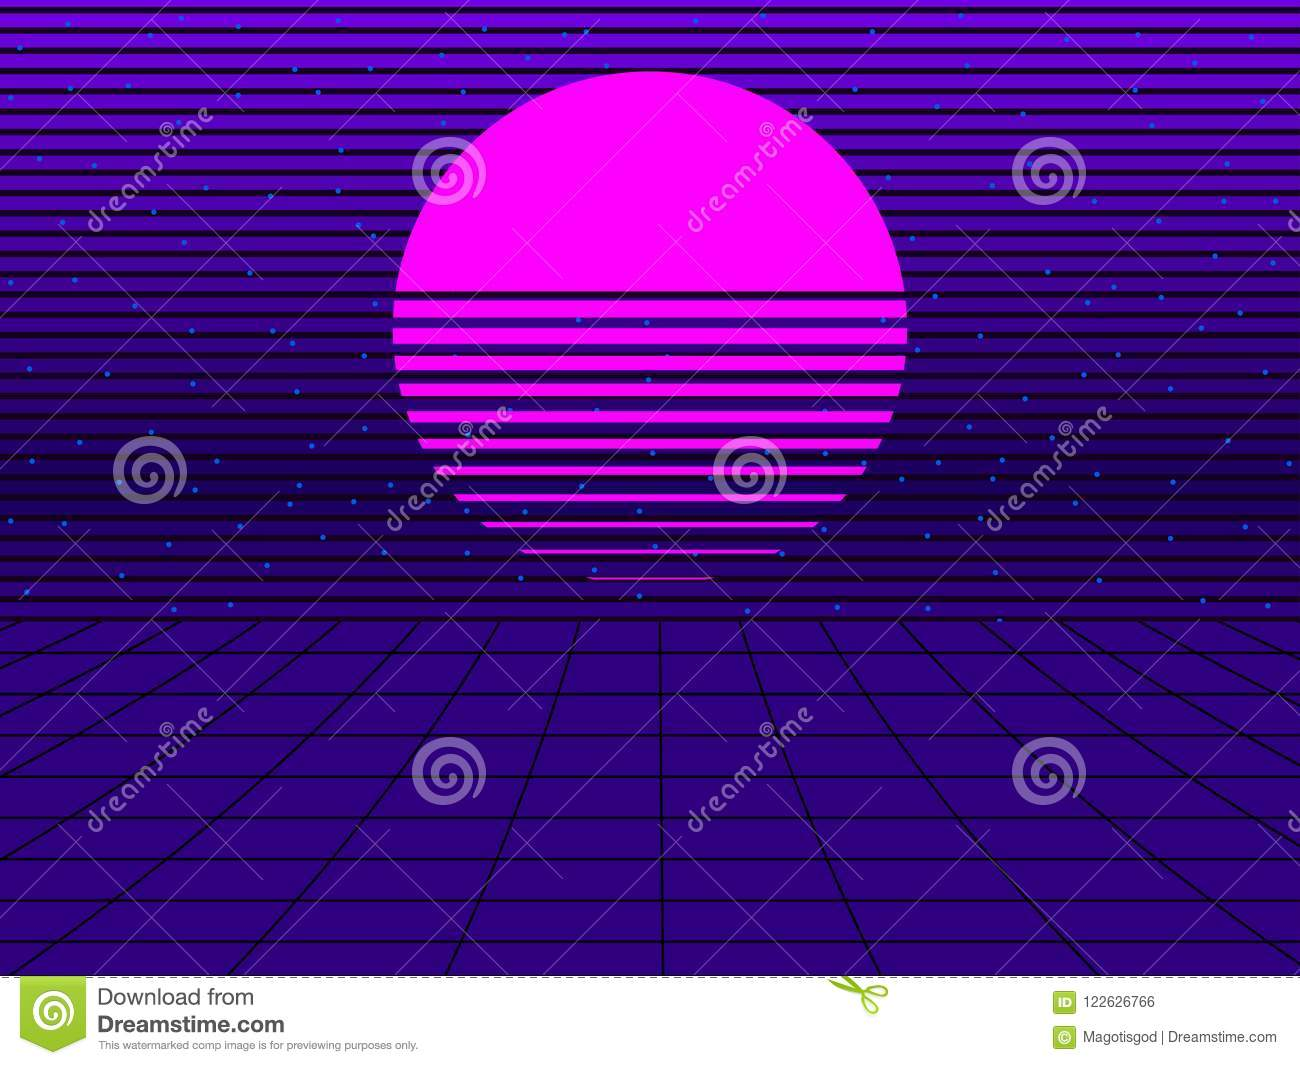 Neon Sunset In The Style Of 80s  Synthwave Retro Futuristic